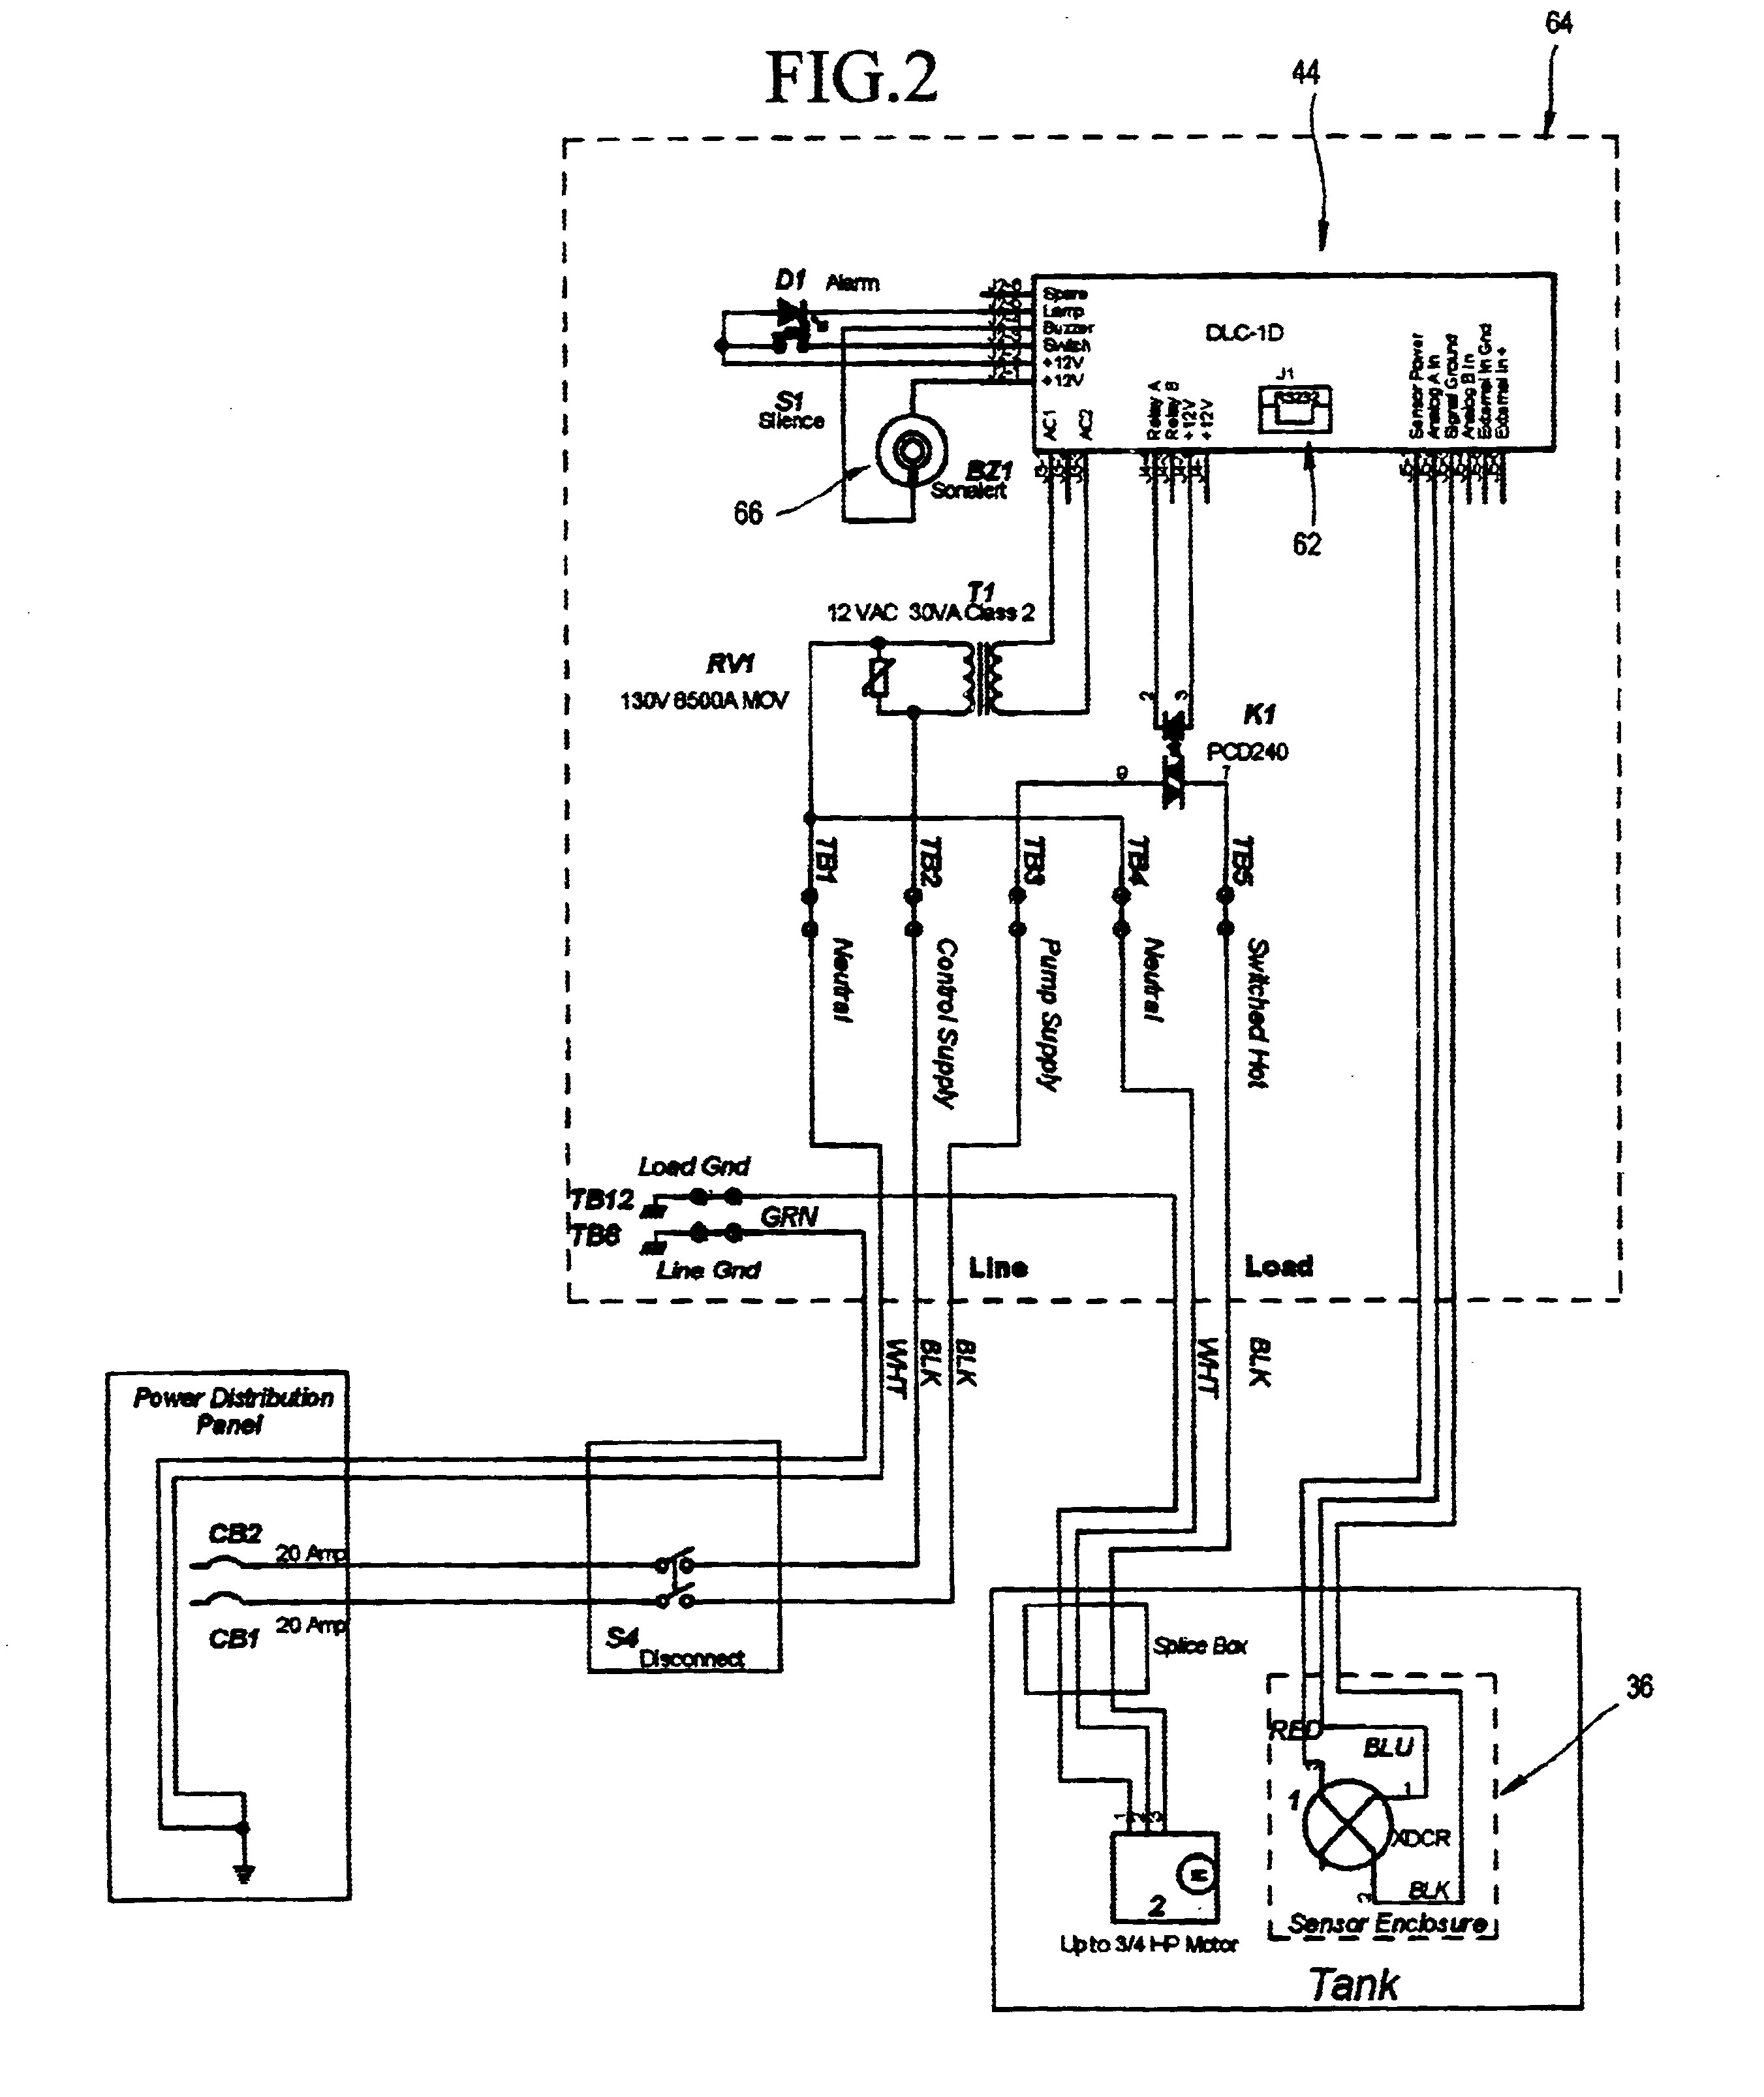 Septic Pump Wiring Diagram How to Wire A Septic Tank Pump Cm Bbs Of Septic Pump Wiring Diagram